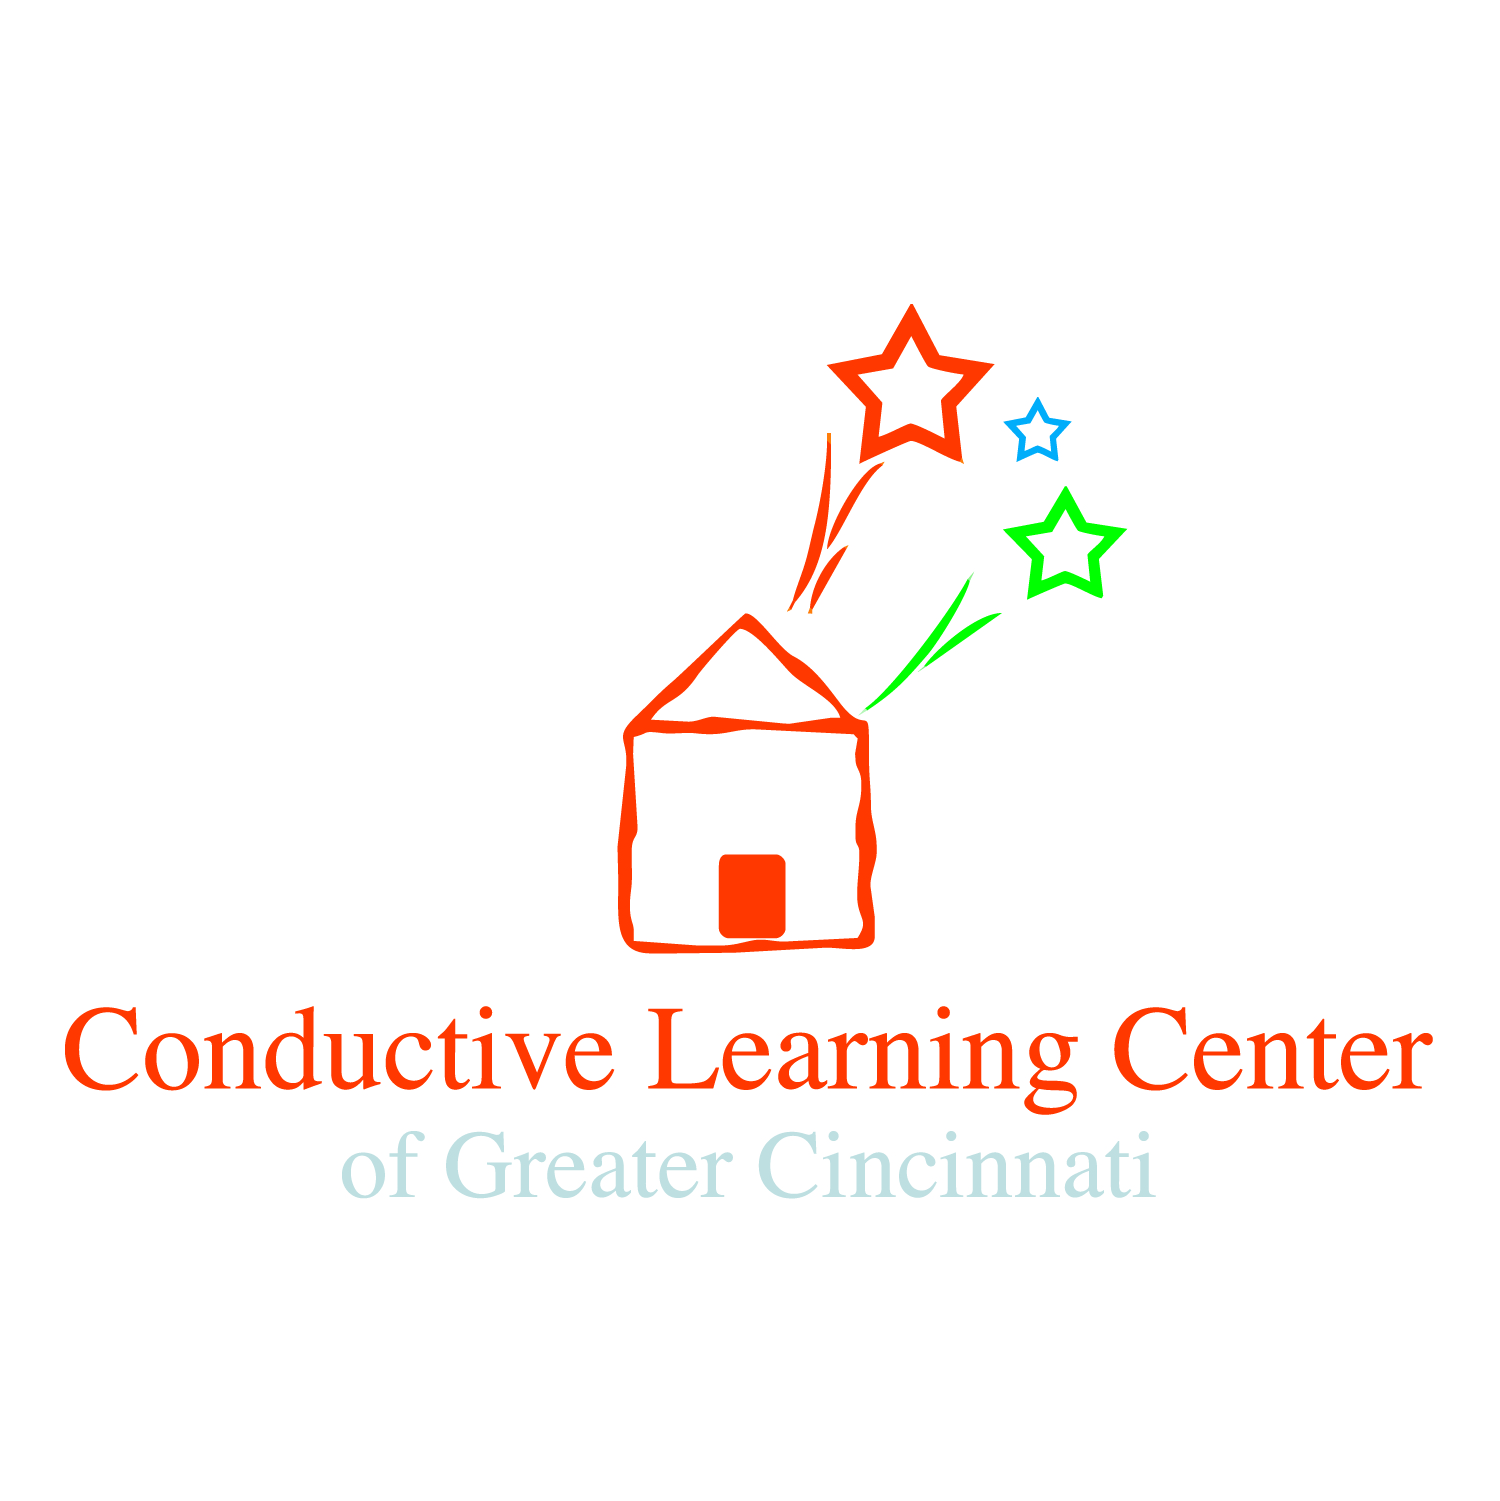 Conductive Learning Center of Greater Cincinnati Logo